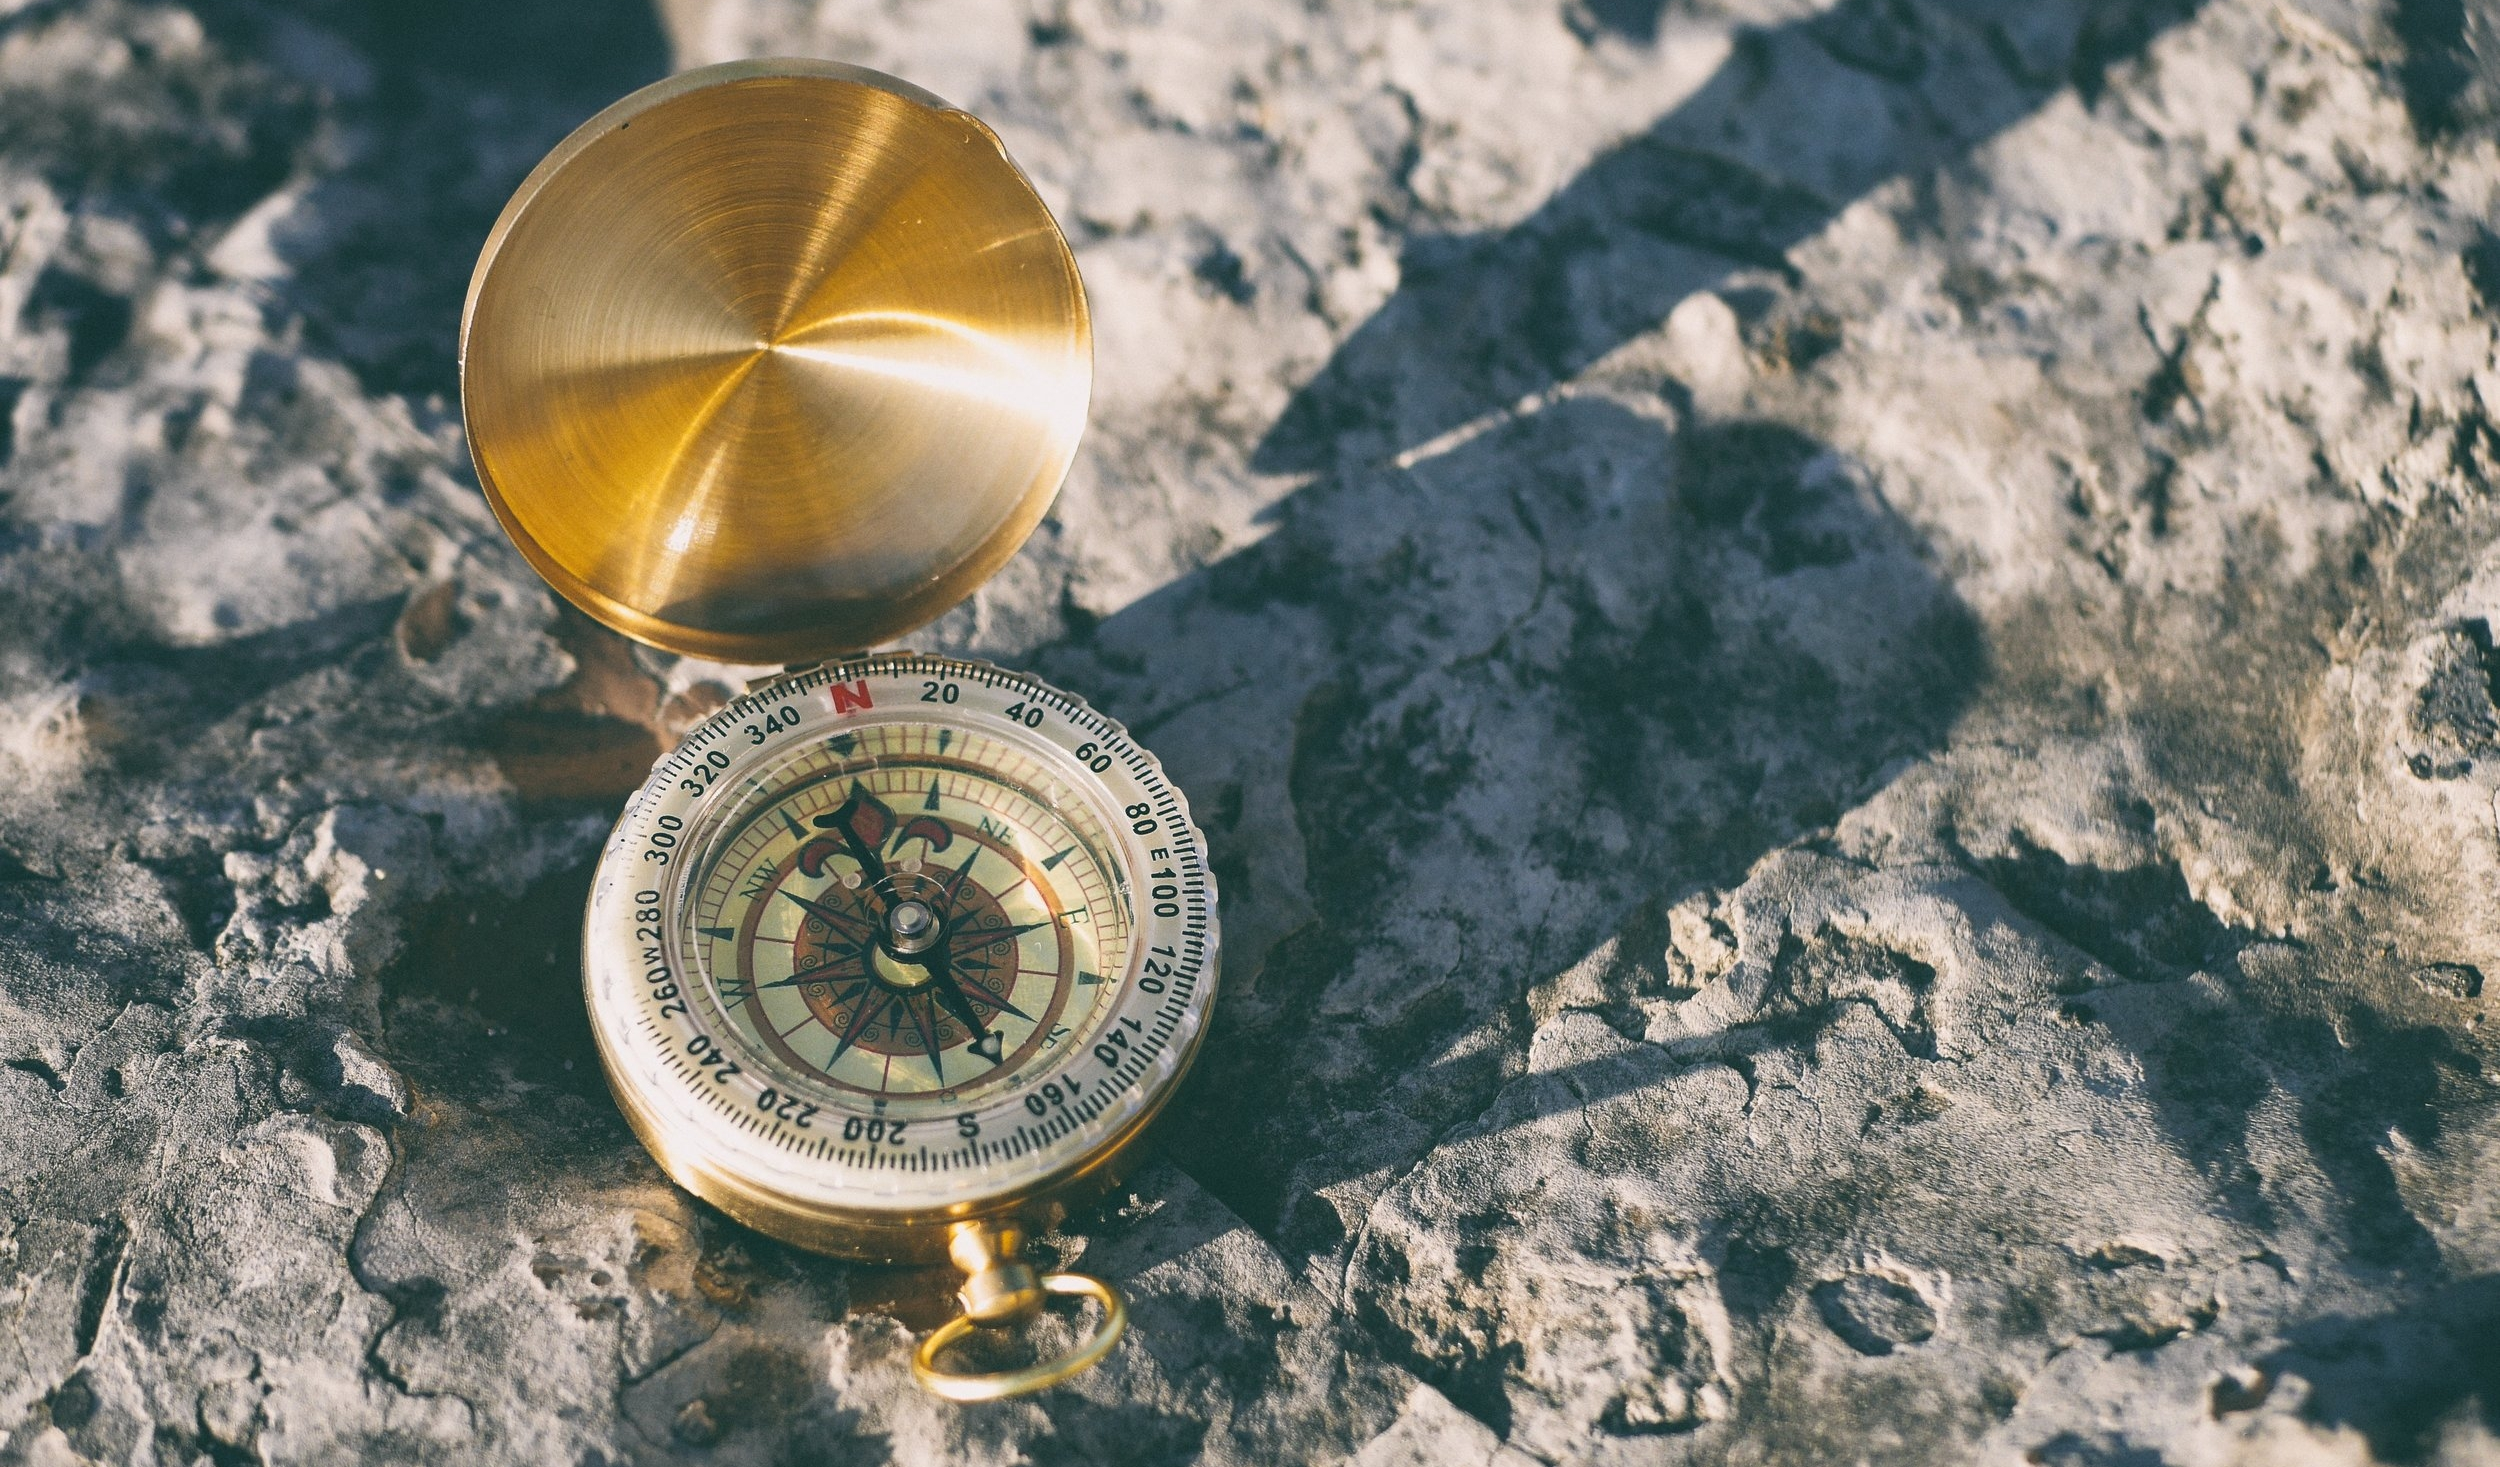 use a compass - What direction are you going in?Use frameworks & practices that support your personal direction. Provide yourself with a container for transformation and carry it with you wherever you go. Be sure to check in regularly to reacquaint yourself to your direction.